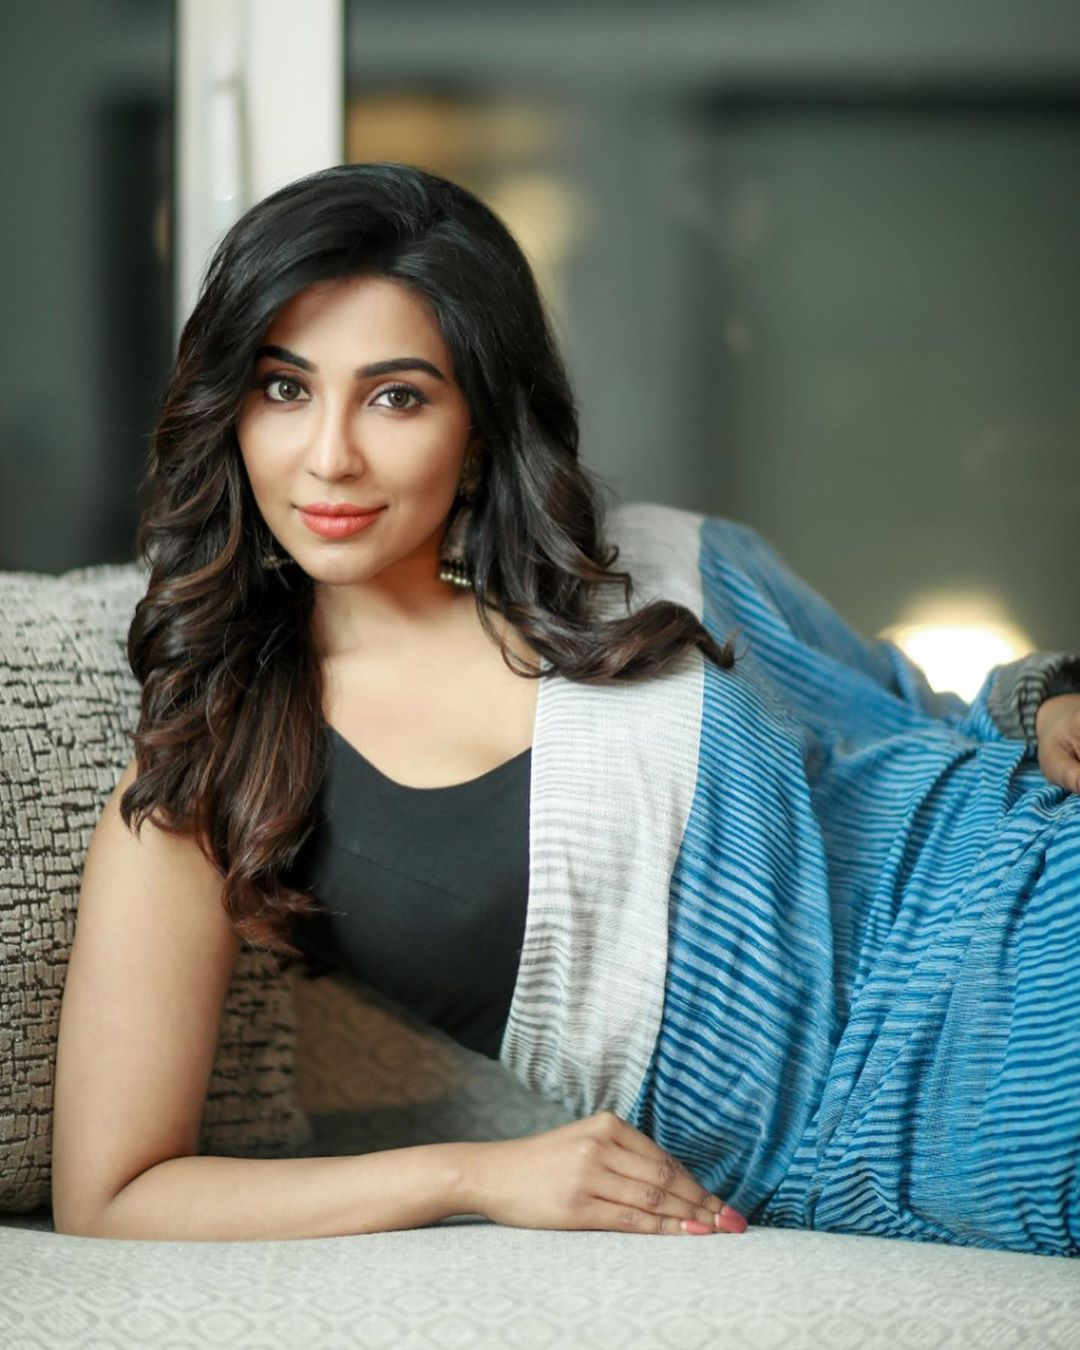 Parvati nair photos (2)